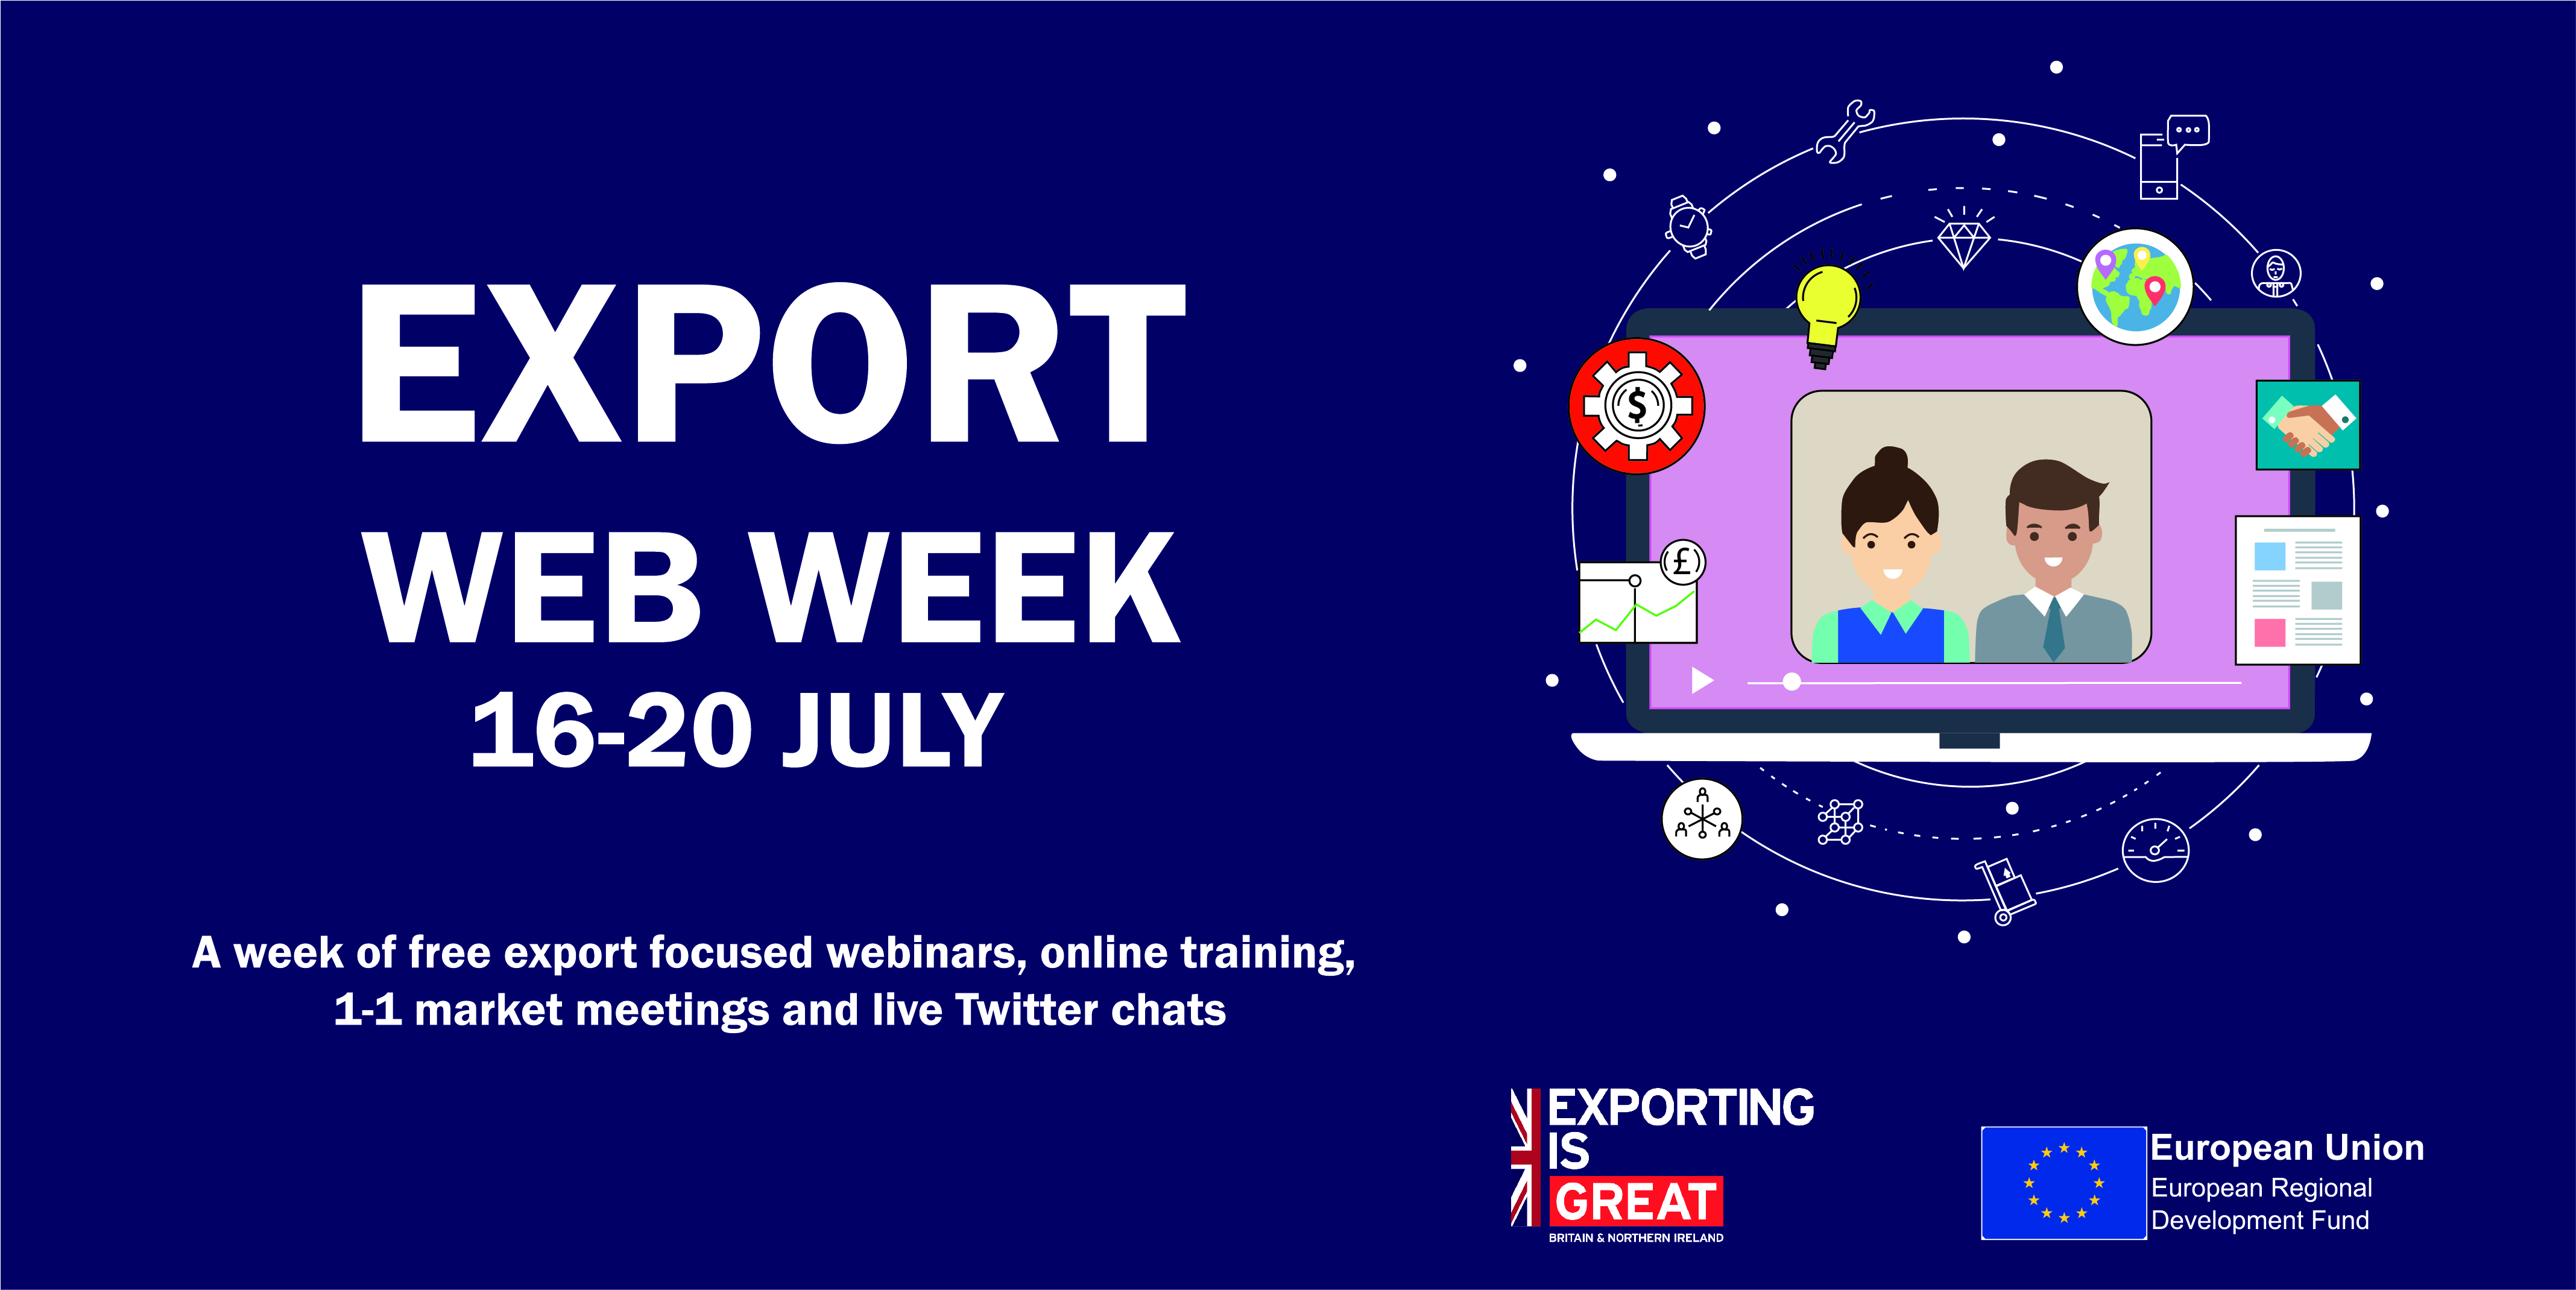 Week of free webinars and online training for aspiring and existing SME exporters